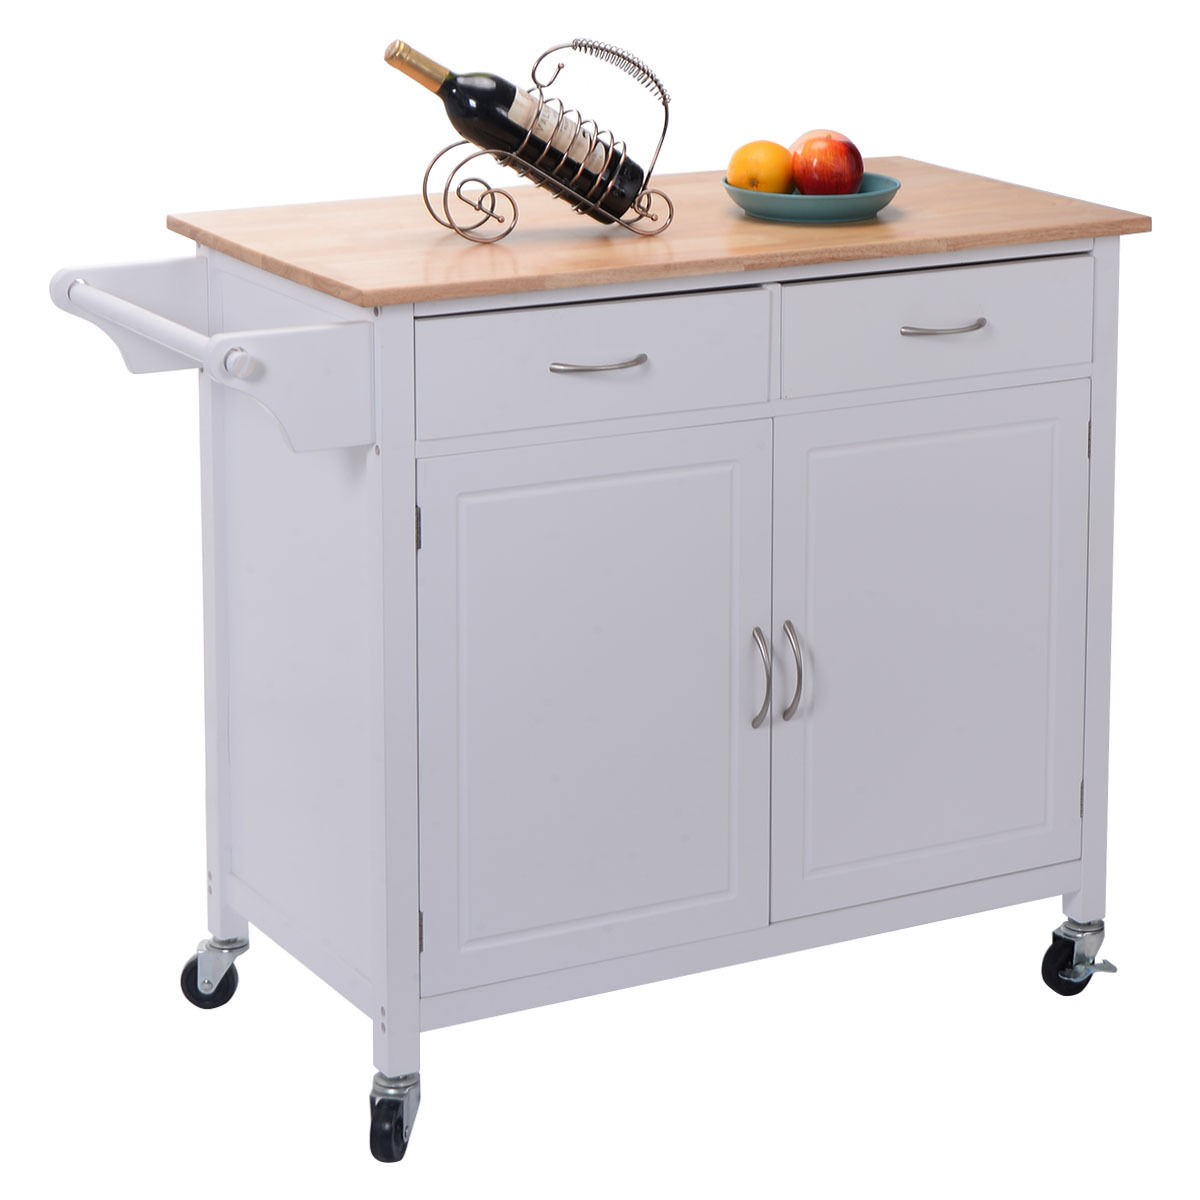 utility kitchen cart renovating us portable rolling wood island serving